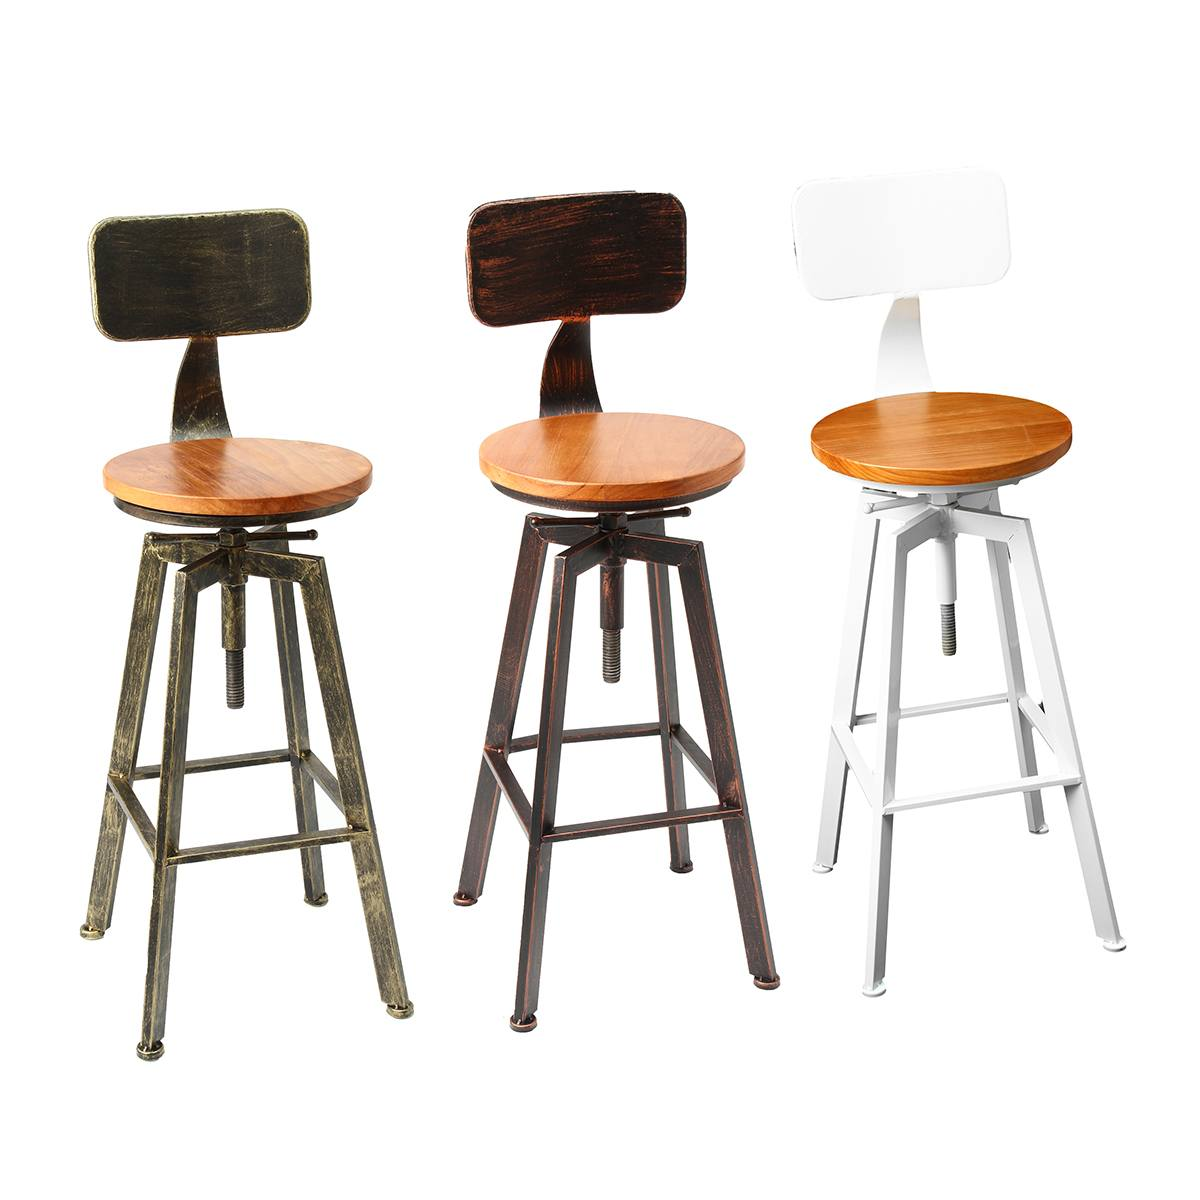 Ashley Furniture Upc Barcode: 3 Colors Retro Industrial Bar Chair Stool Adjustable Wood